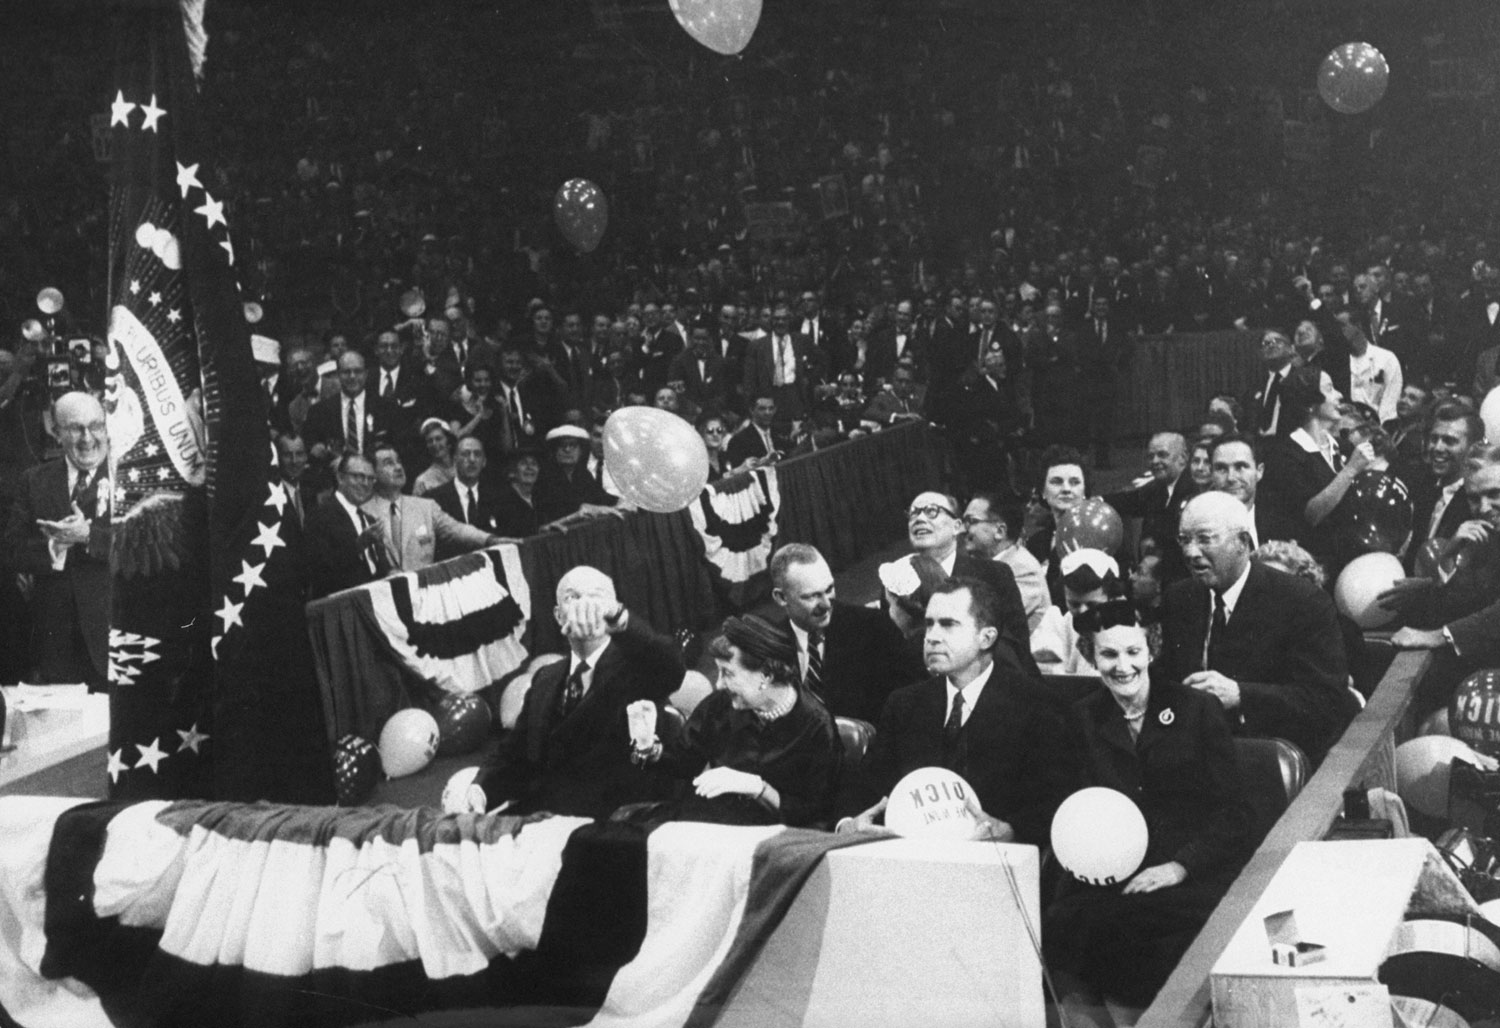 Left to right: President Dwight D. Eisenhower, his wife Mamie, Richard M. Nixon and his wife, Pat, at the 1956 GOP National Convention, San Francisco, California.